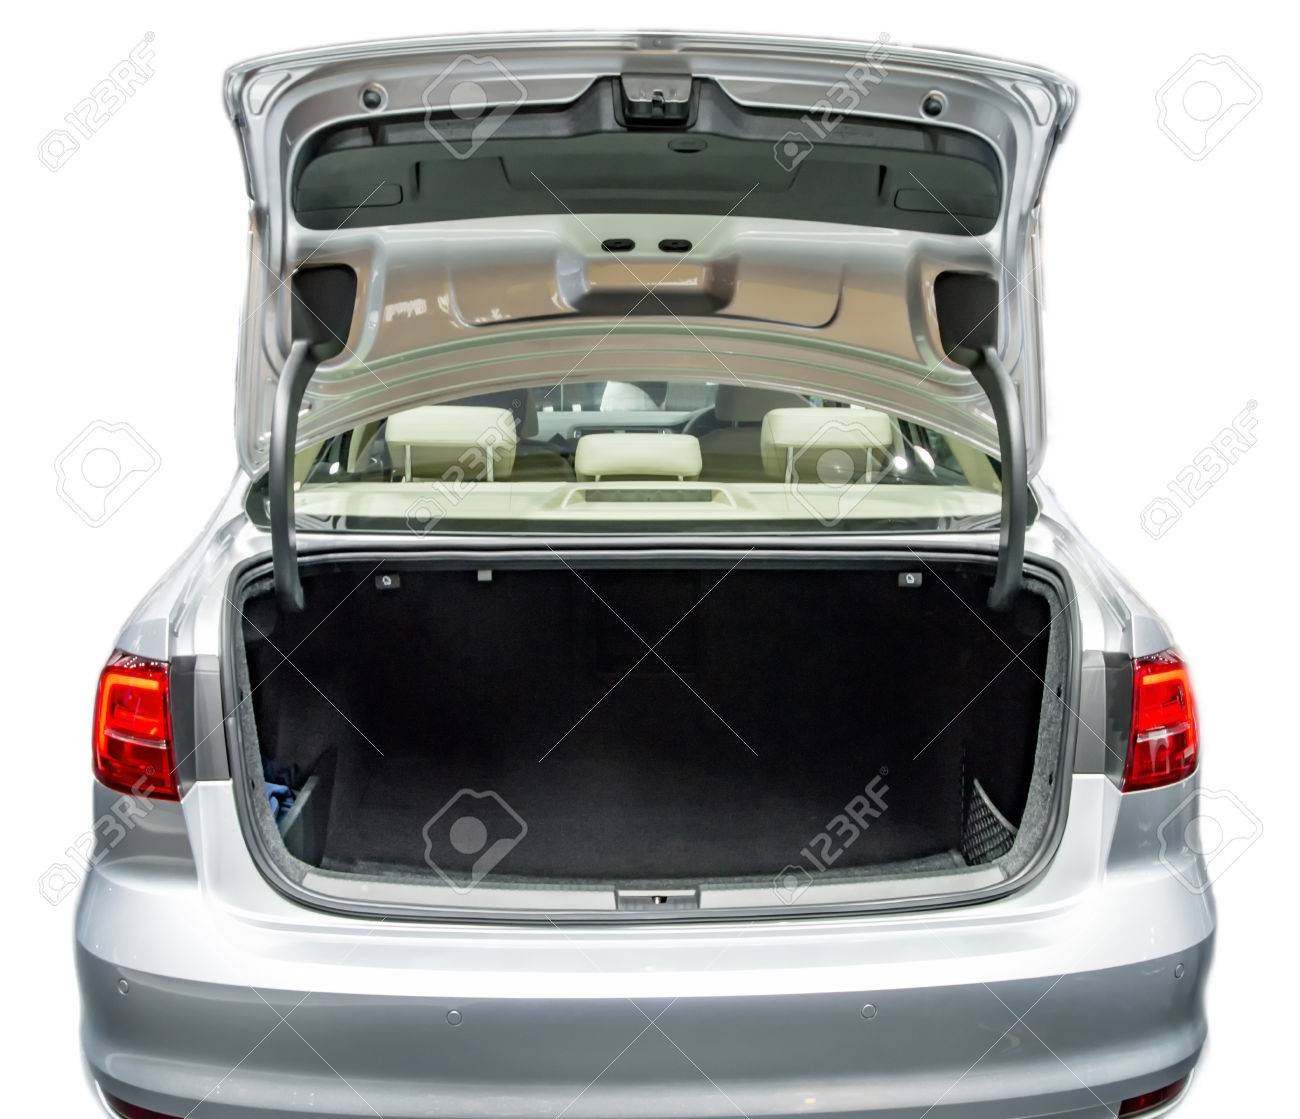 Empty car boot space and with open state. - 56285068